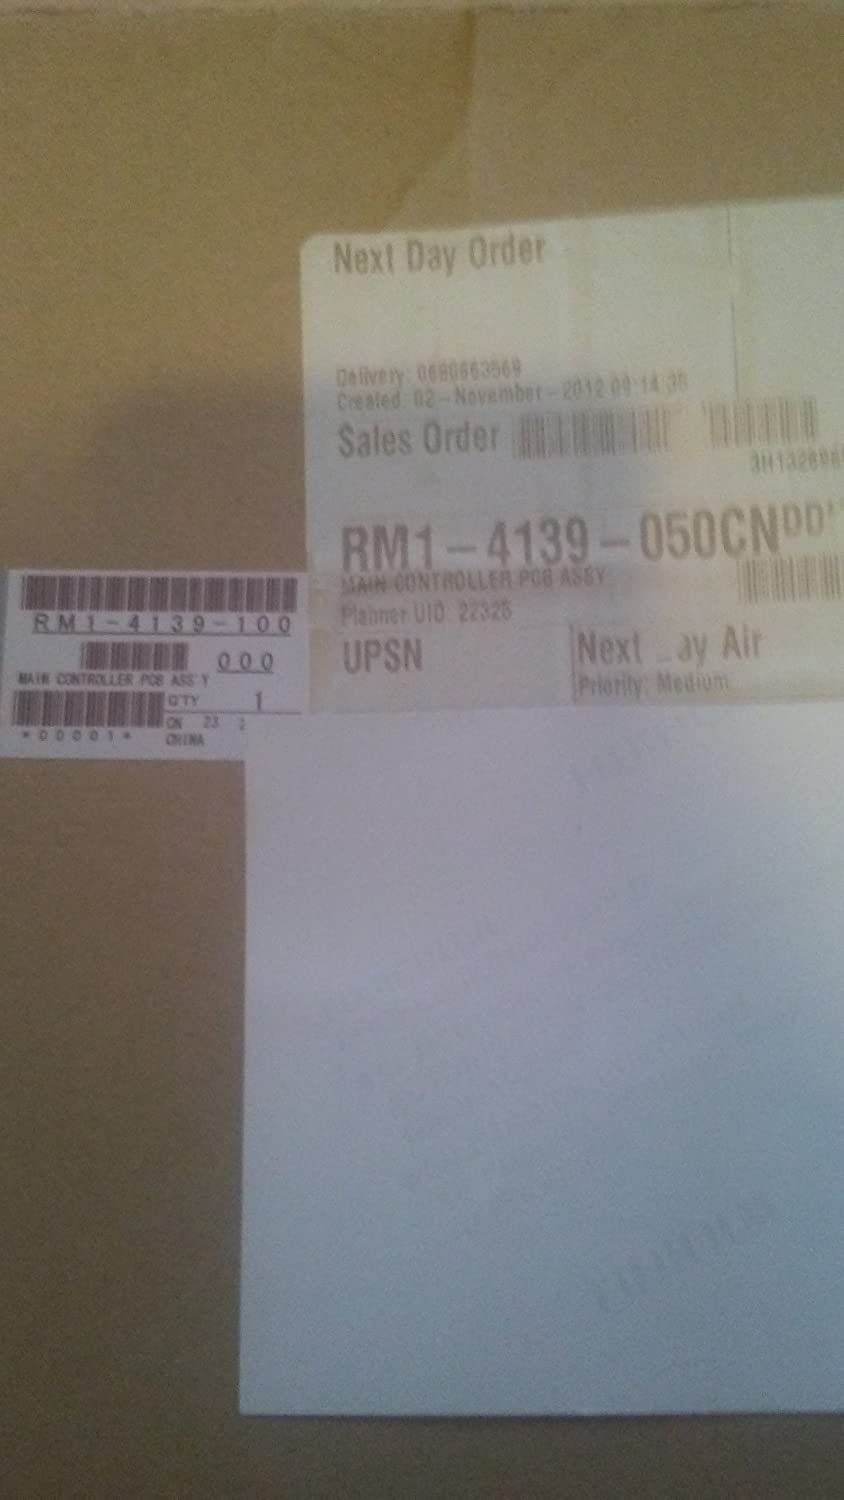 HP RM1-4139-050CN - Hewlett Packard Printer Processors and Circuit Boards